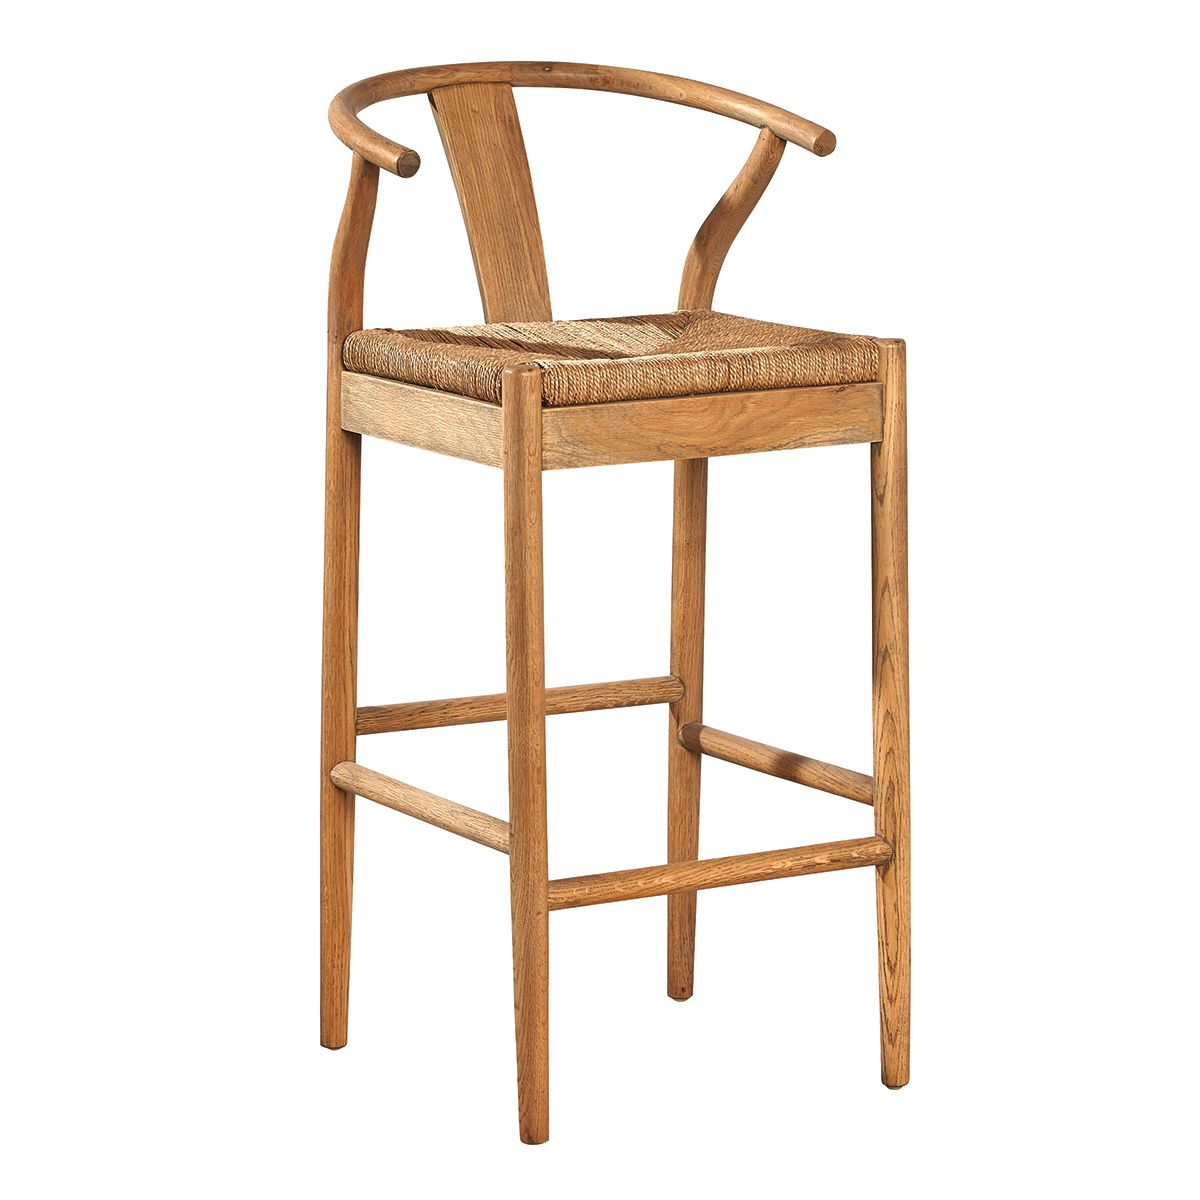 separation shoes d6a97 c1ee3 The Dump Furniture Outlet - WISHBONE BARSTOOL | Bar stools ...